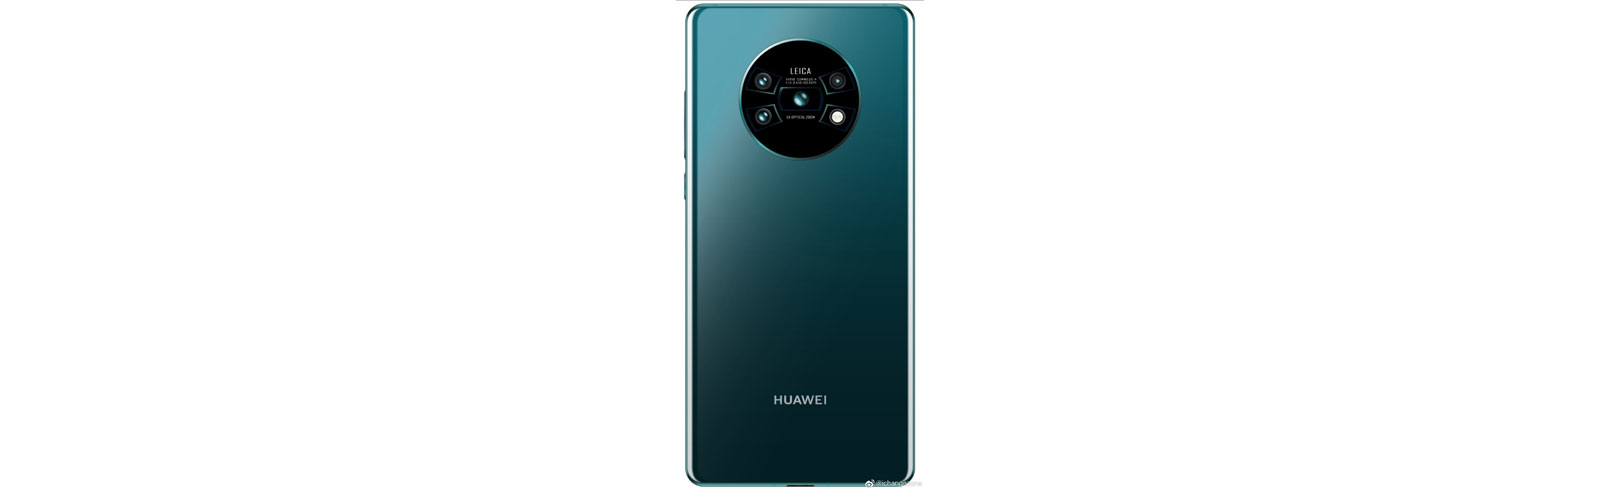 Alleged Huawei Mate 30 Pro leaks in images